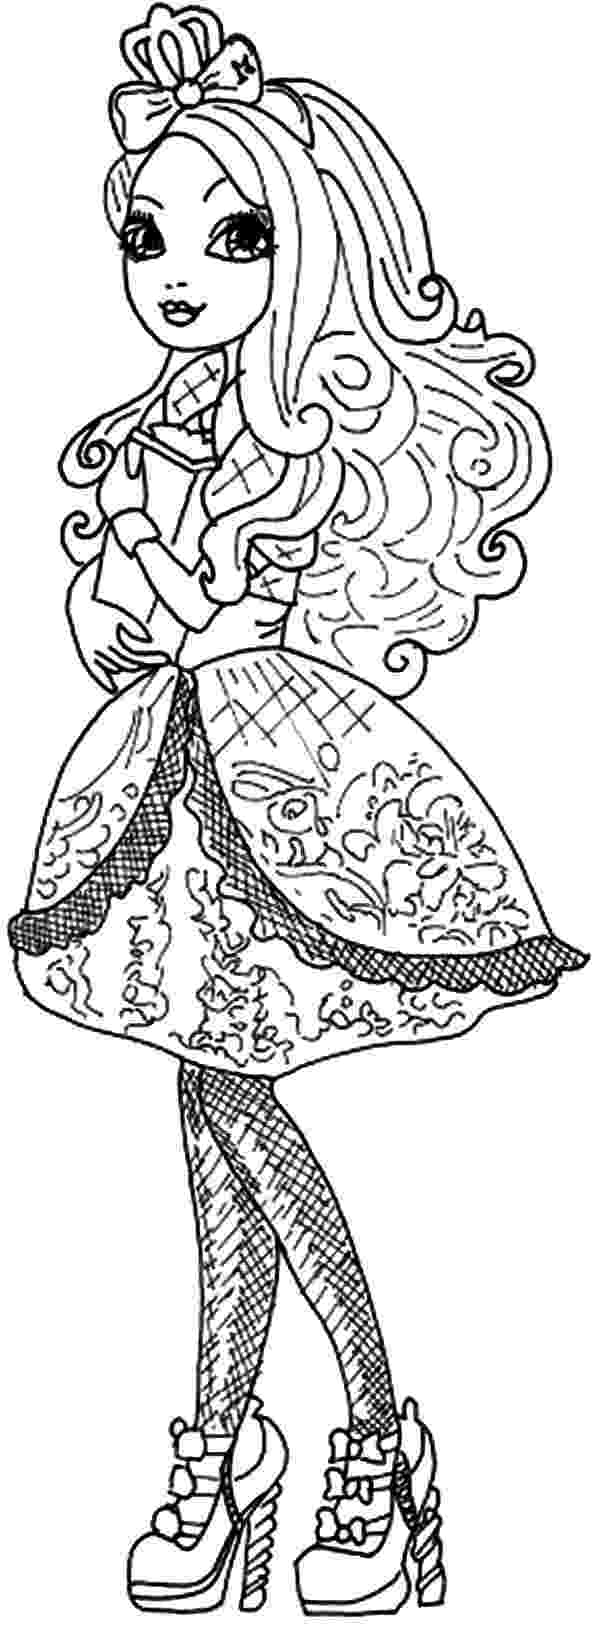 free ever after high printables ever after high slowly walking coloring pages download free after printables high ever